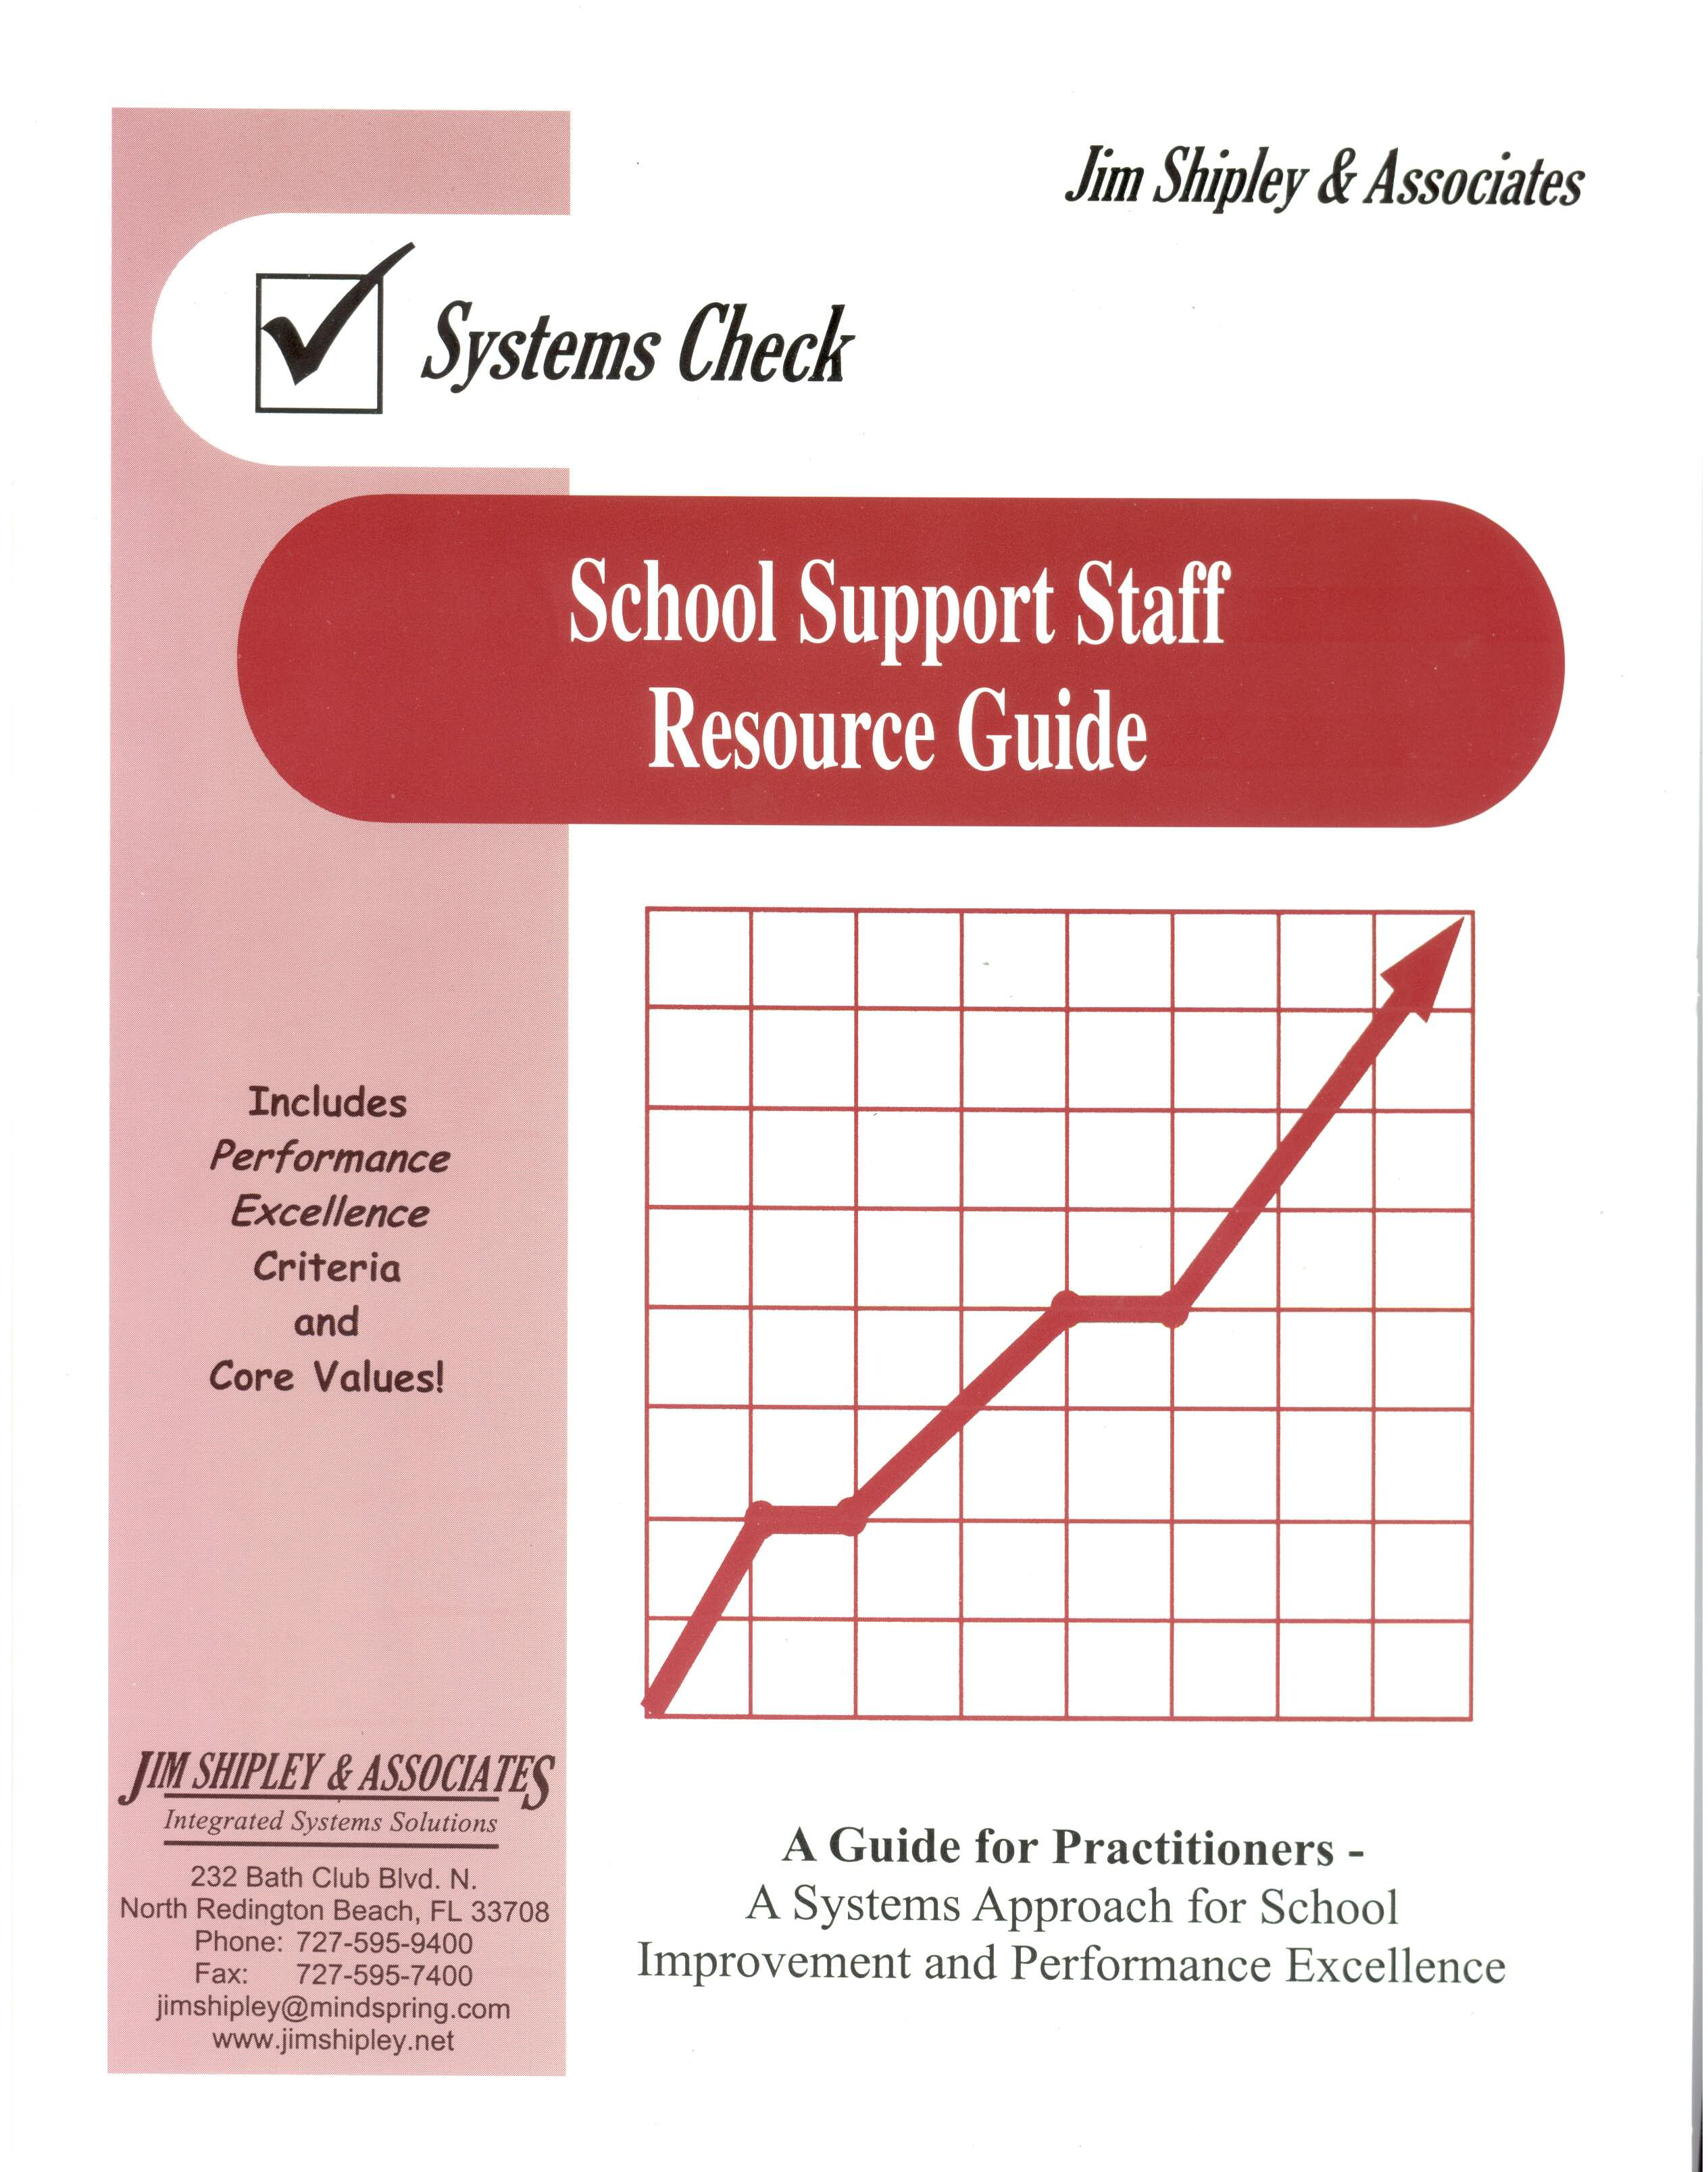 RGSSS - School Support Staff Resource Guide Cover Image